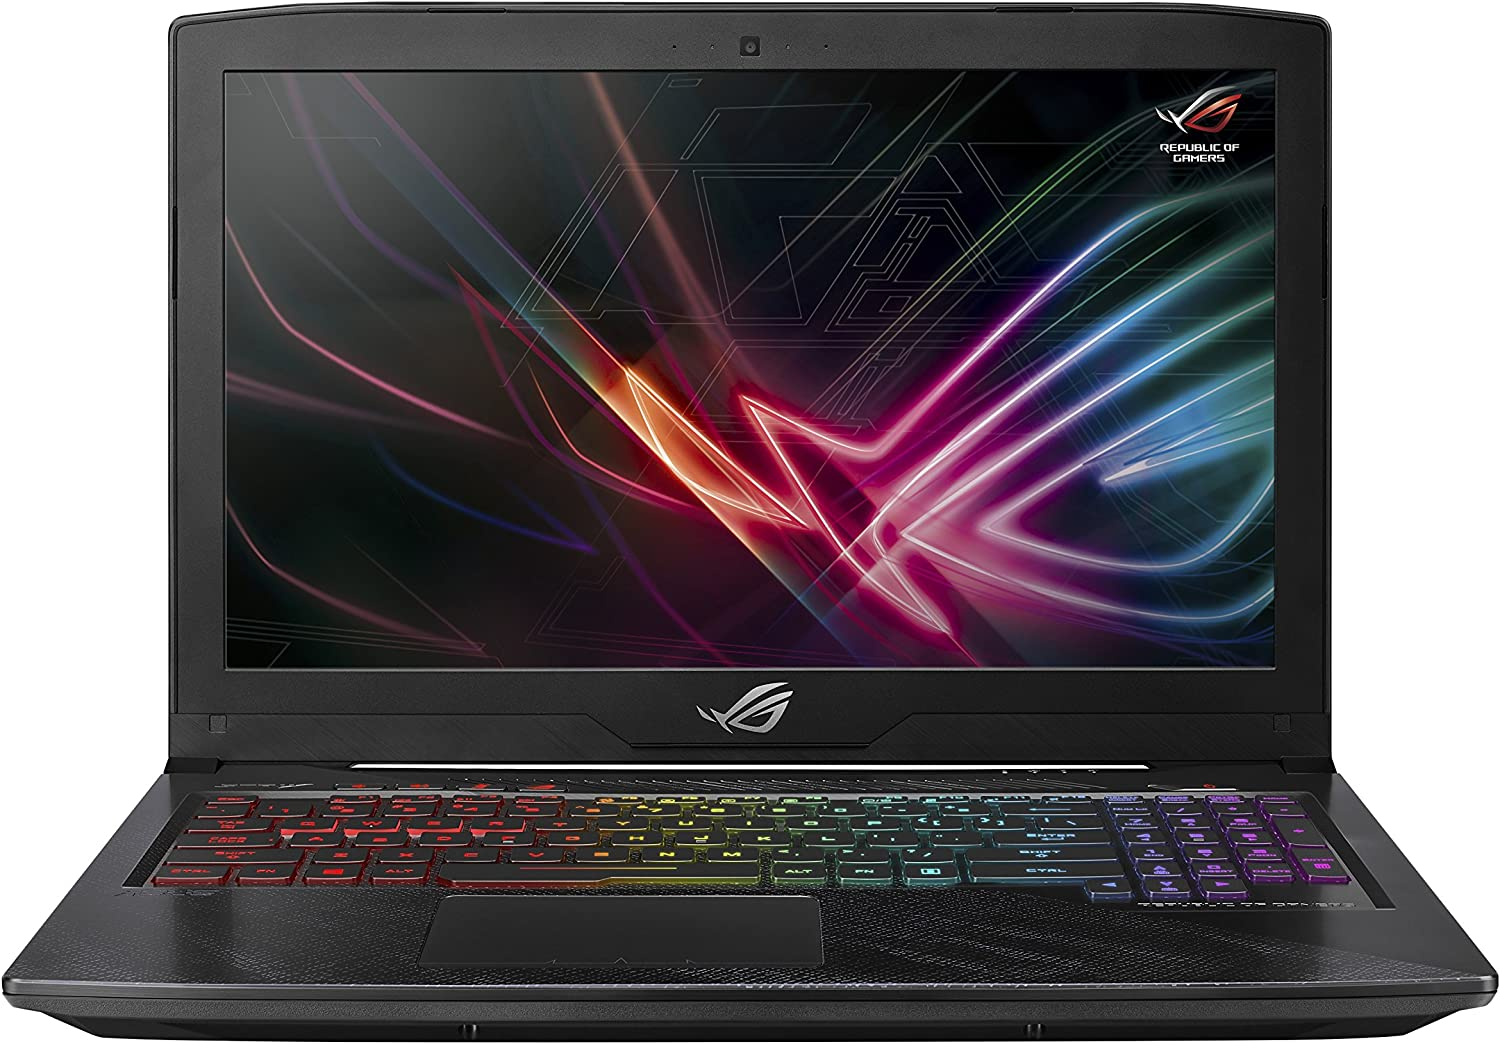 "Asus ROG Strix Scar Edition GL703GE Gaming Laptop, 17.3"" 120Hz Full HD 3ms, 8th Gen Intel Core i7-8750H Processor, GTX 1050 Ti 4GB, 16GB DDR4, 256GB SSD + 1TB HDD, Windows 10 Home, GL703GE-AS74"